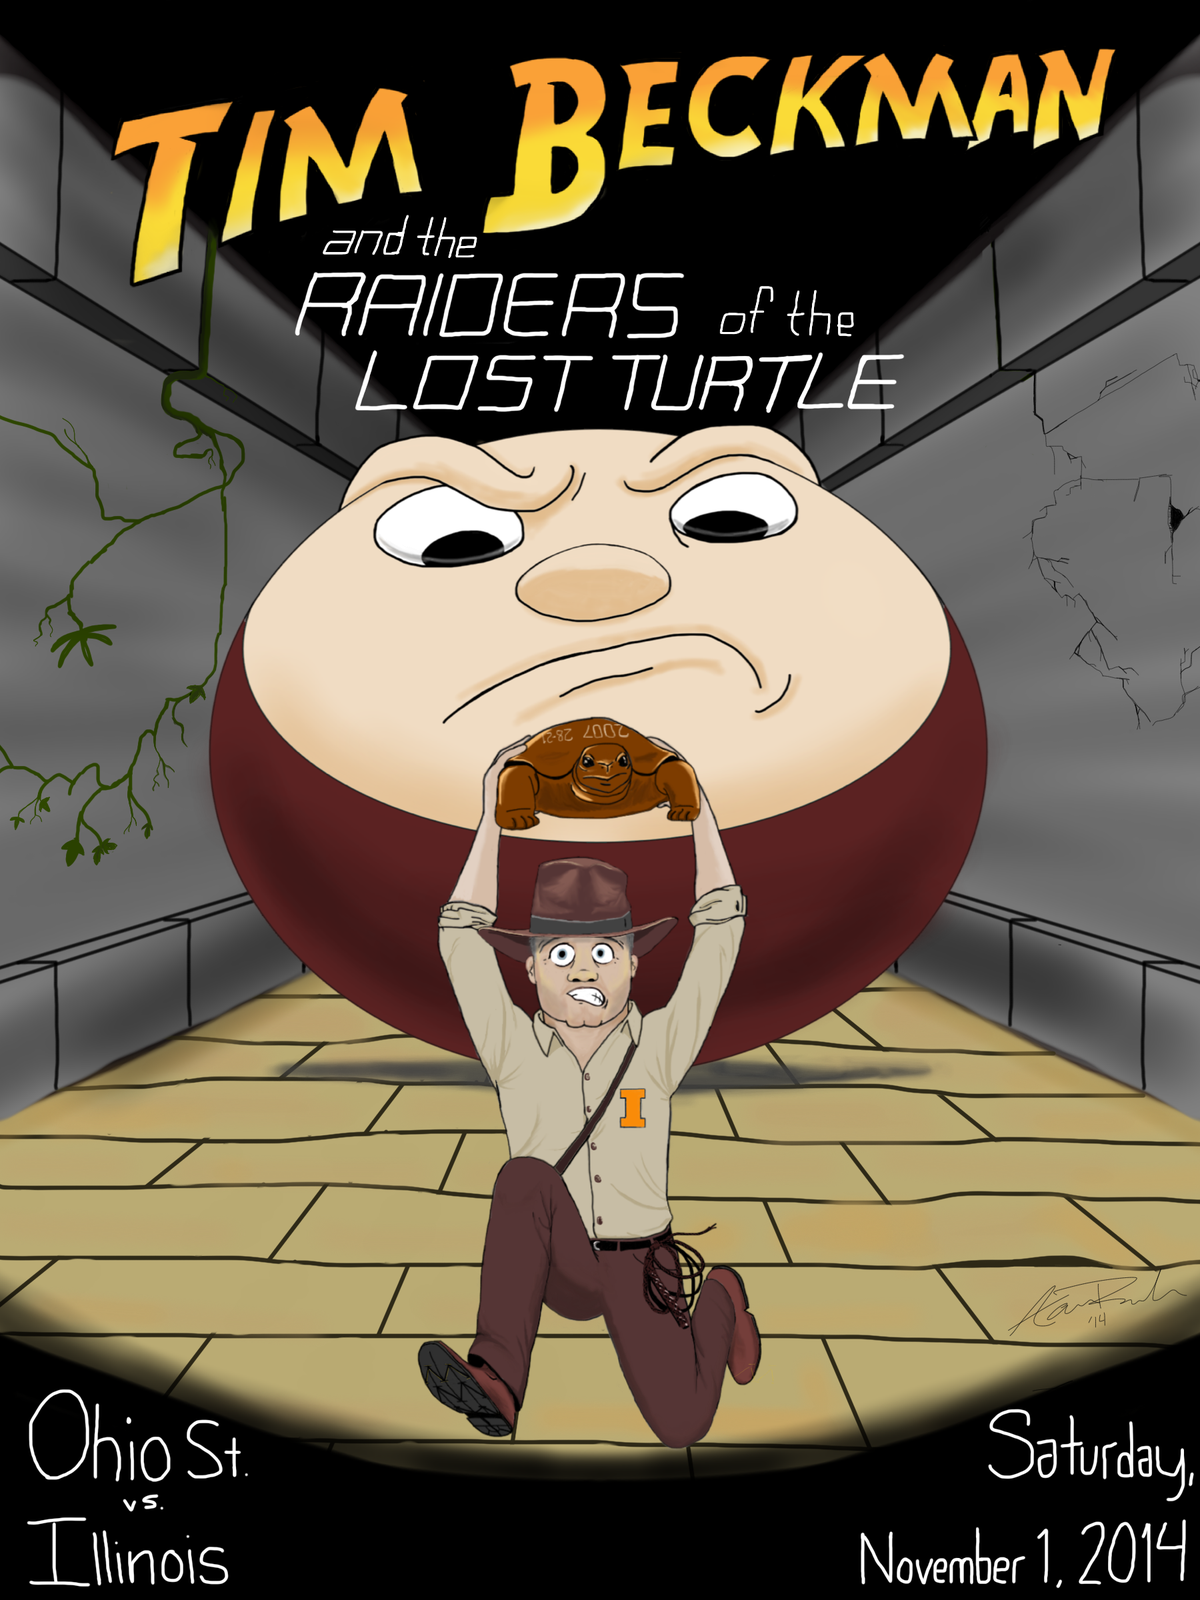 Tim Beckman and Raiders of the Lost Illibuck